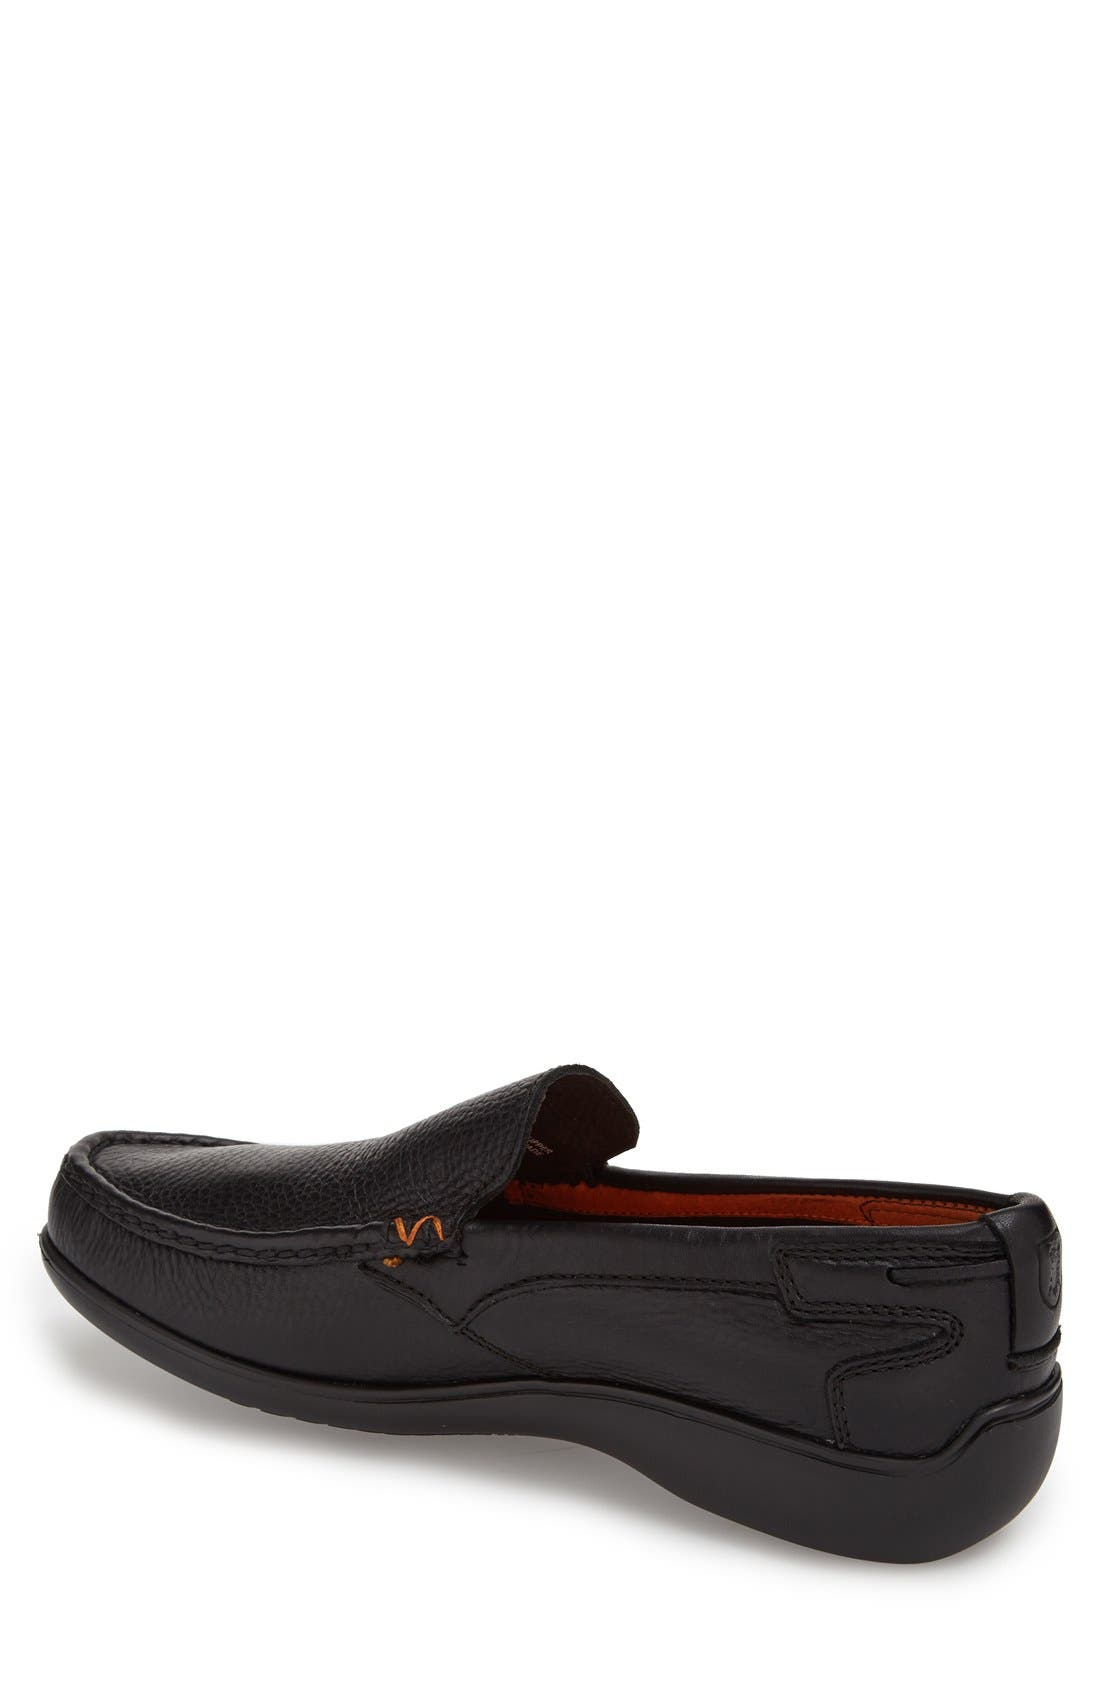 'Sterling' Loafer,                             Alternate thumbnail 2, color,                             001